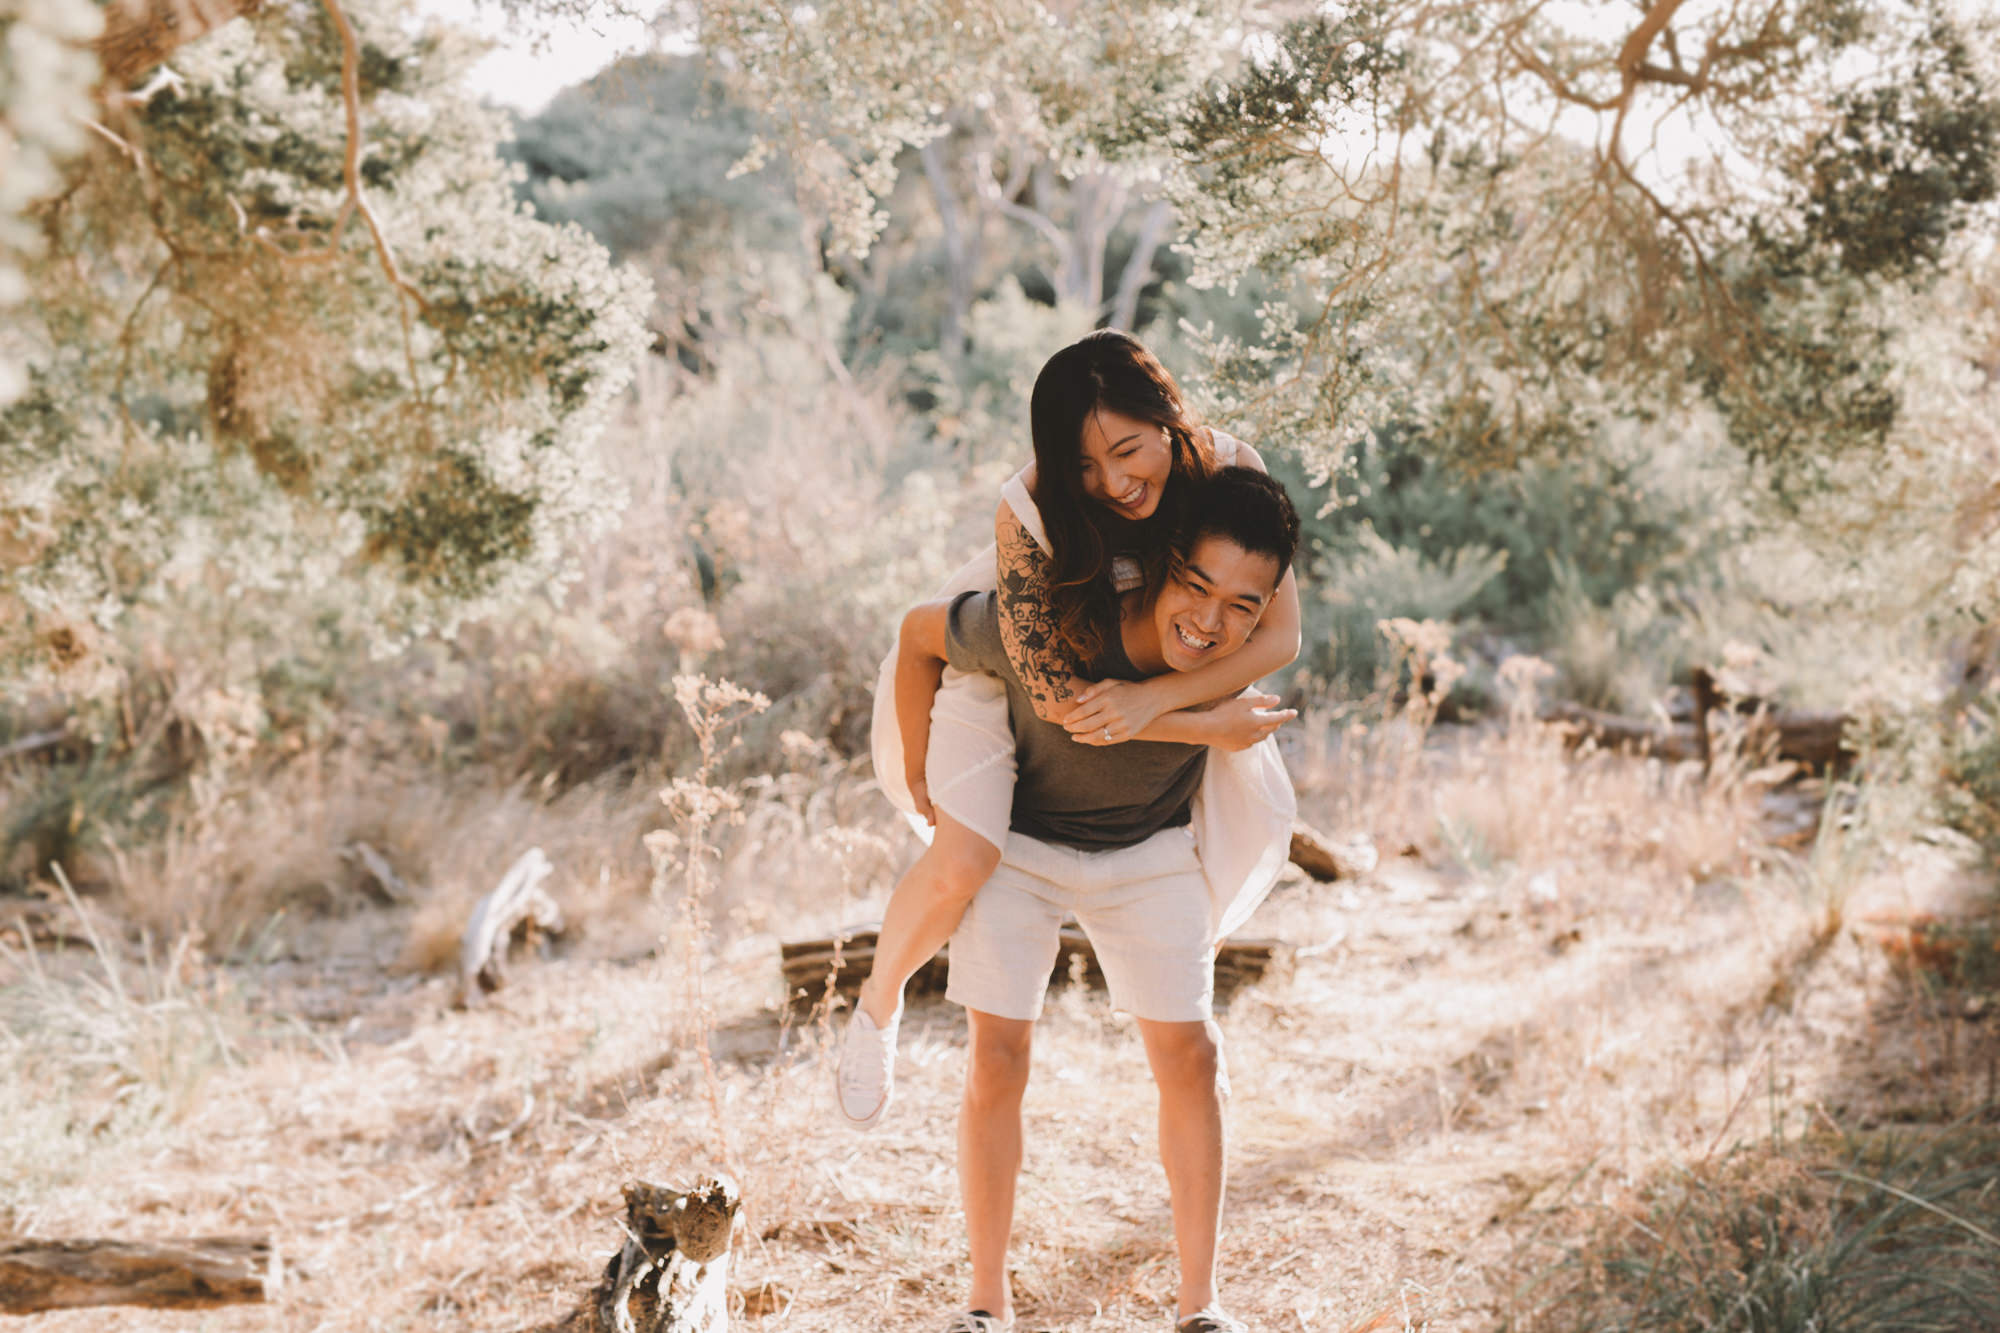 Mount Martha Natural Fun Candid Engagement Wedding Photography-6.jpg